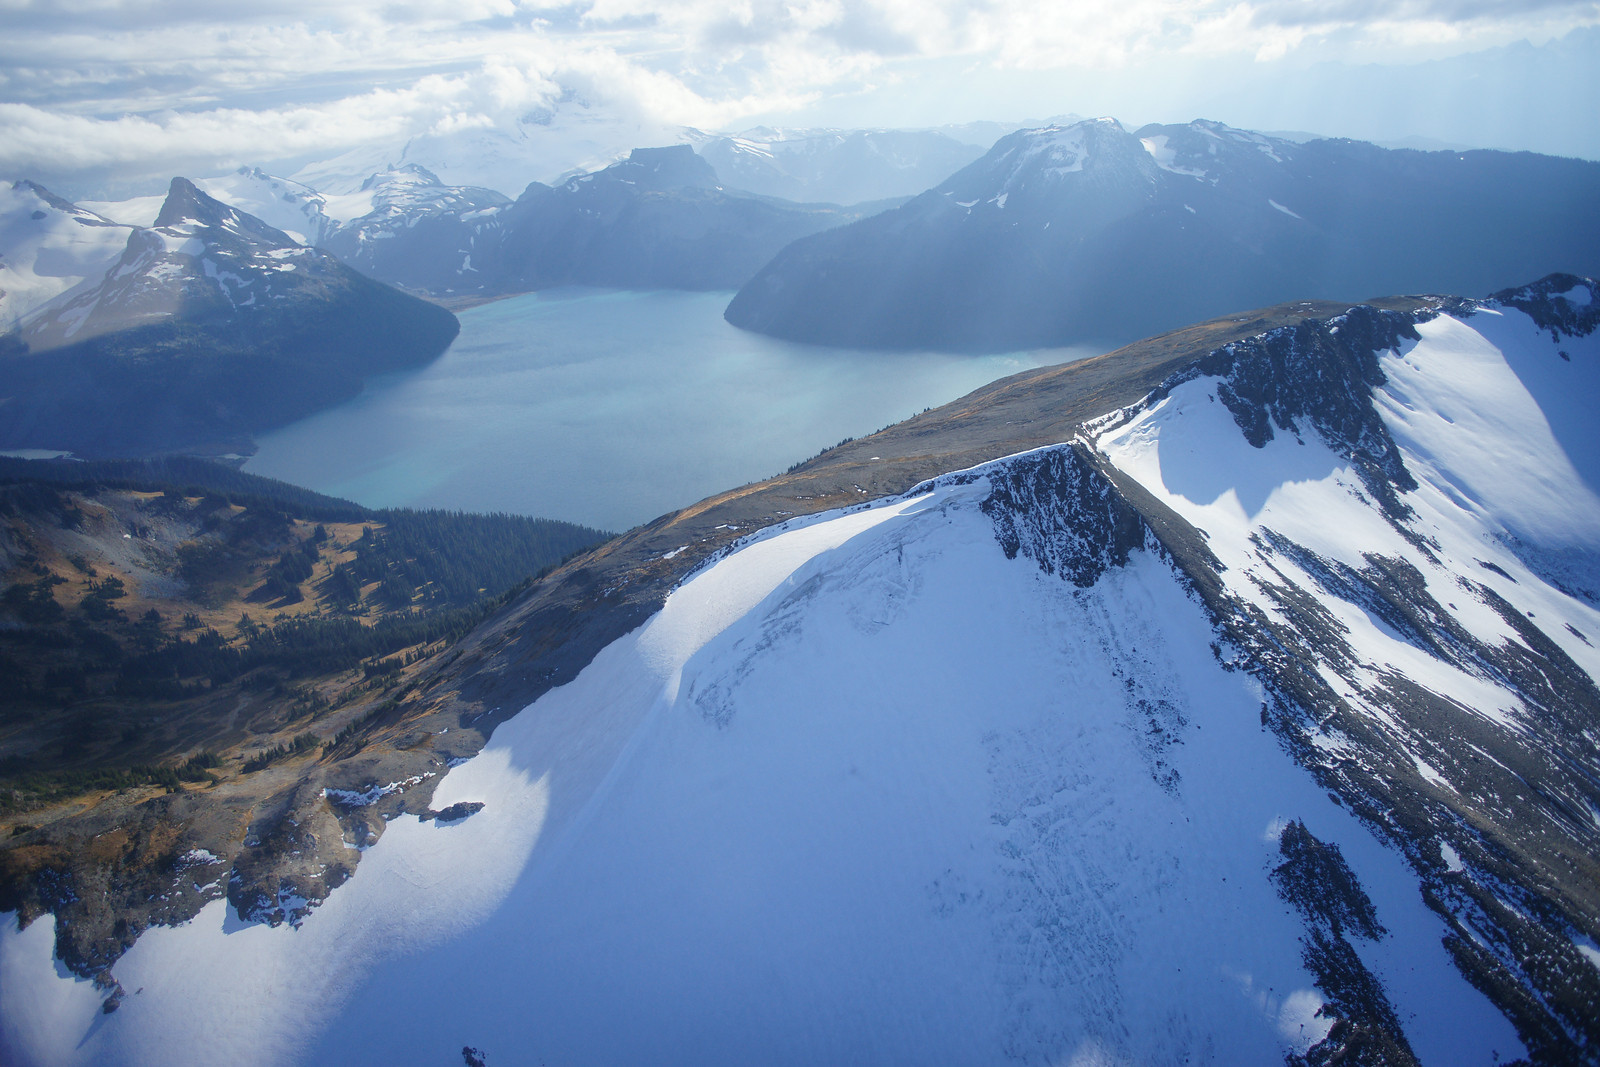 The Alpine scenery of Garibaldi Provincial Park (Canada)